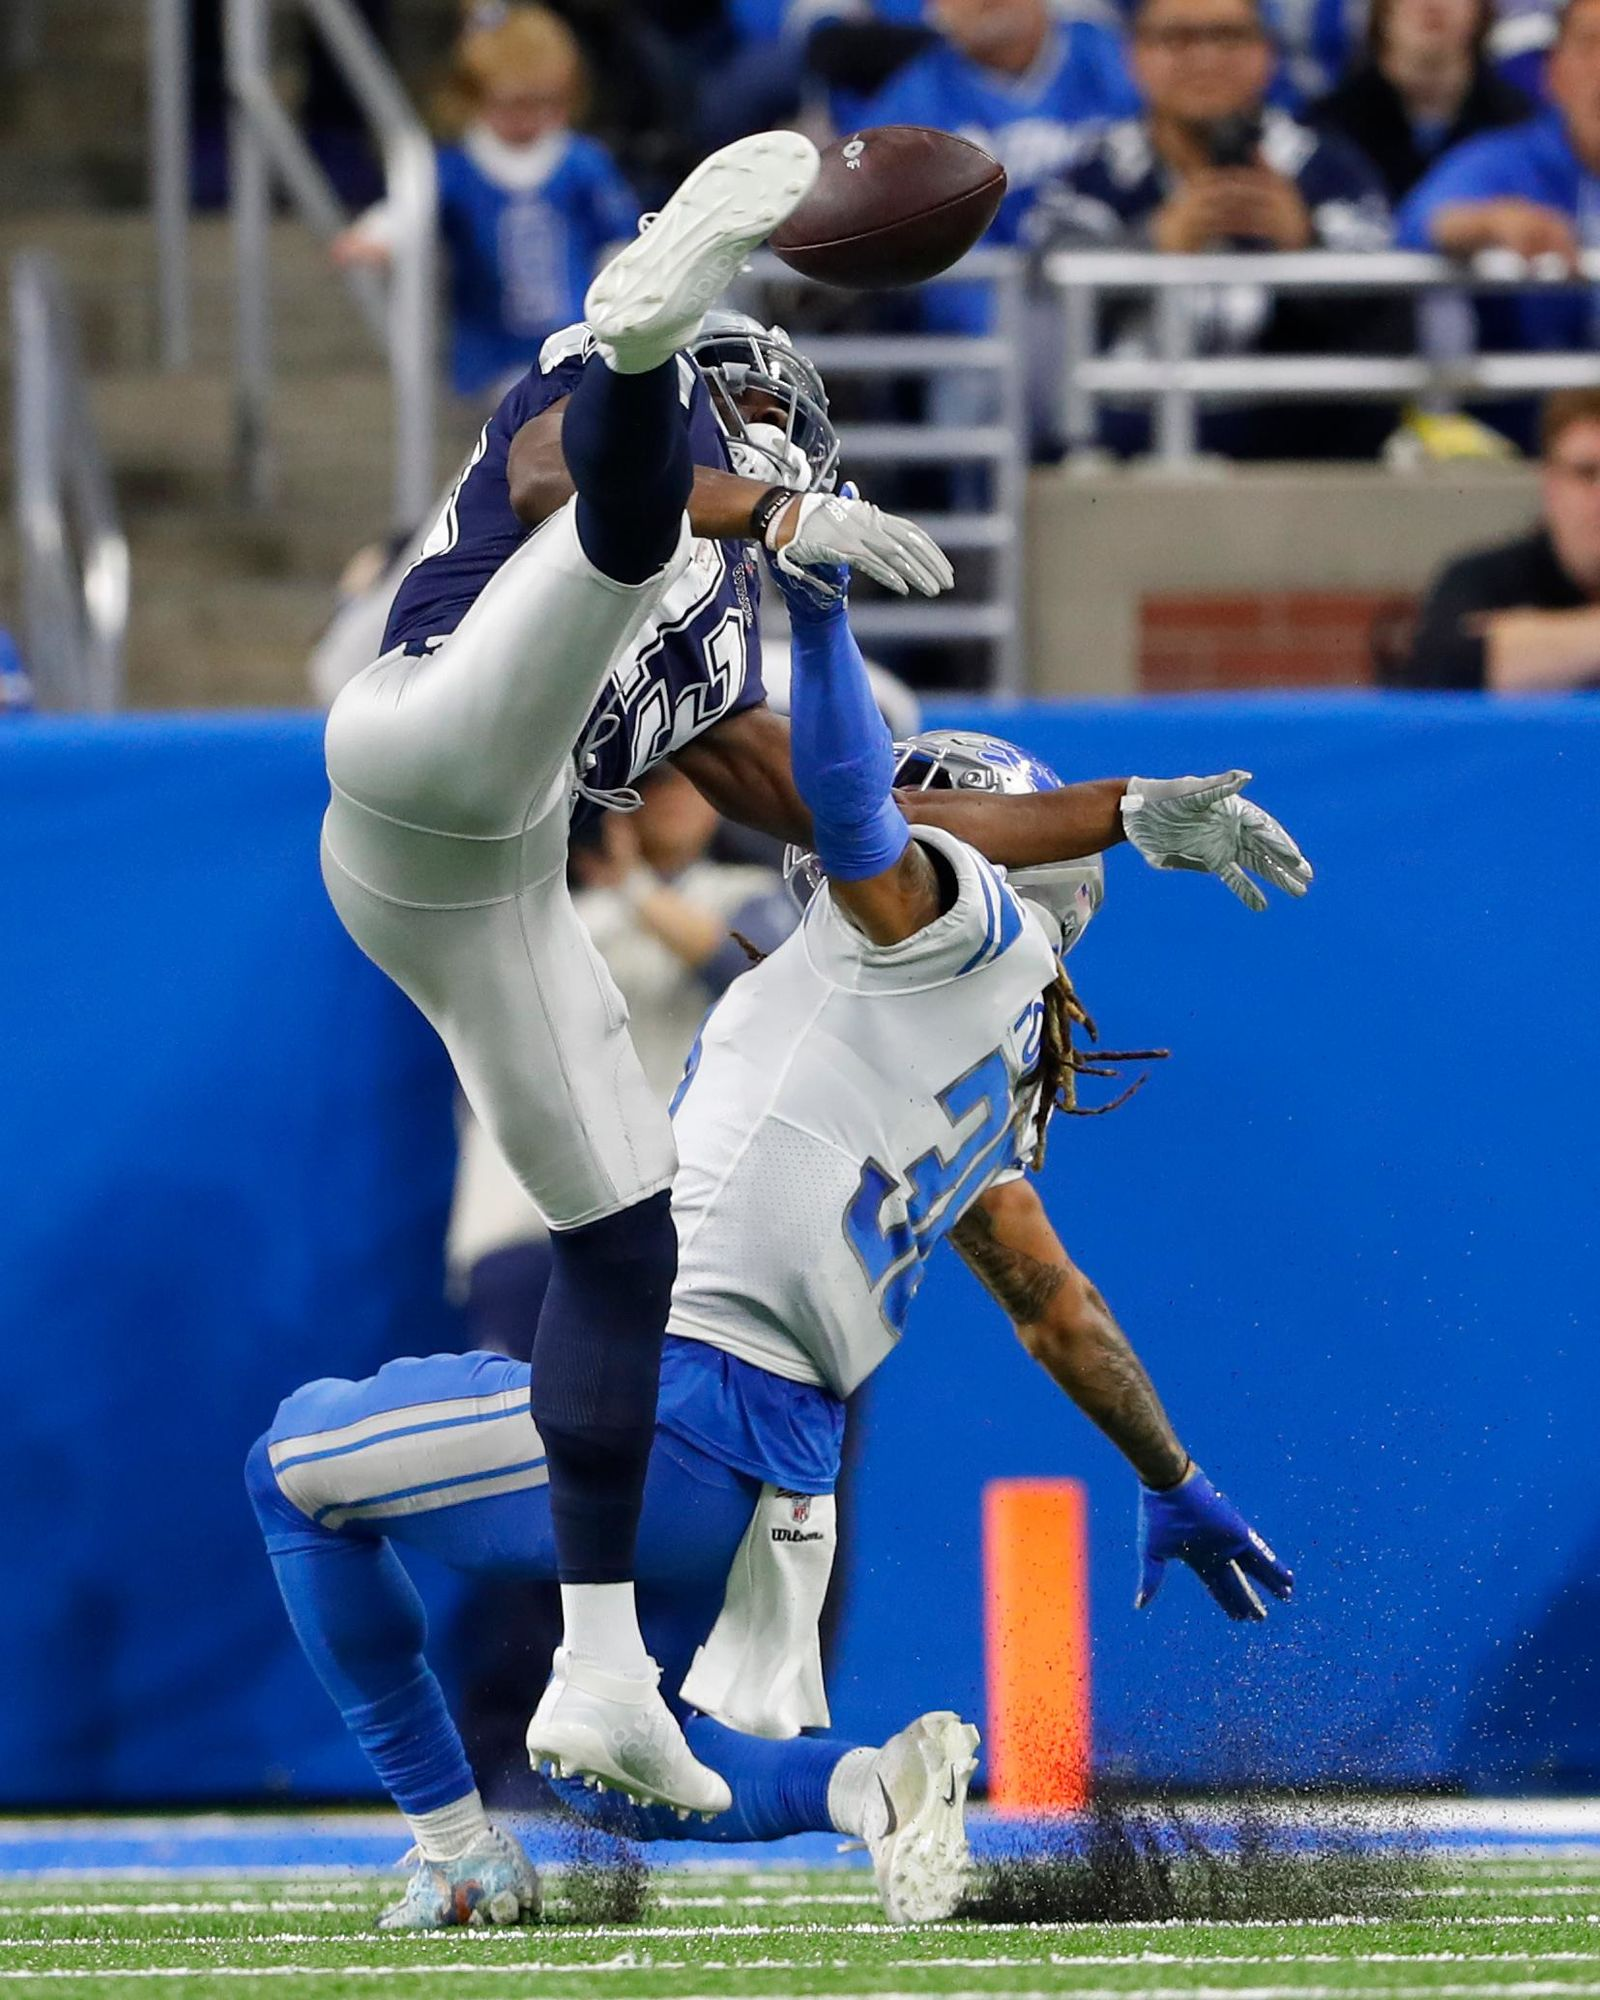 Detroit Lions defensive back Mike Ford (38) interferes with Dallas Cowboys wide receiver Michael Gallup (13) during the first half of an NFL football game, Sunday, Nov. 17, 2019, in Detroit. (AP Photo/Paul Sancya)